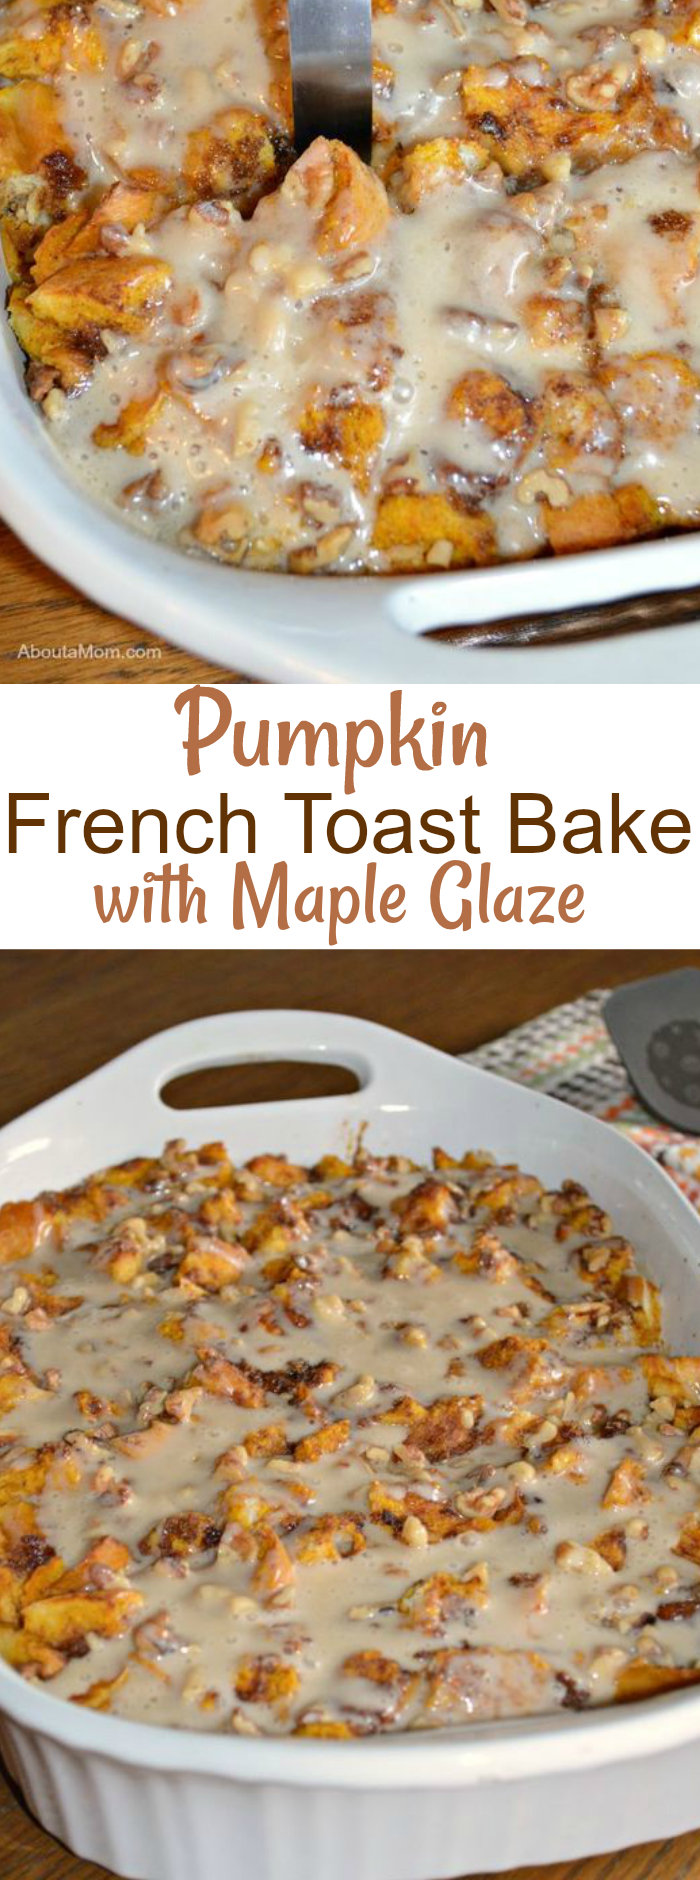 Pumpkin French Toast Bake with Maple Glaze - Perfect for a special weekend or holiday breakfast!